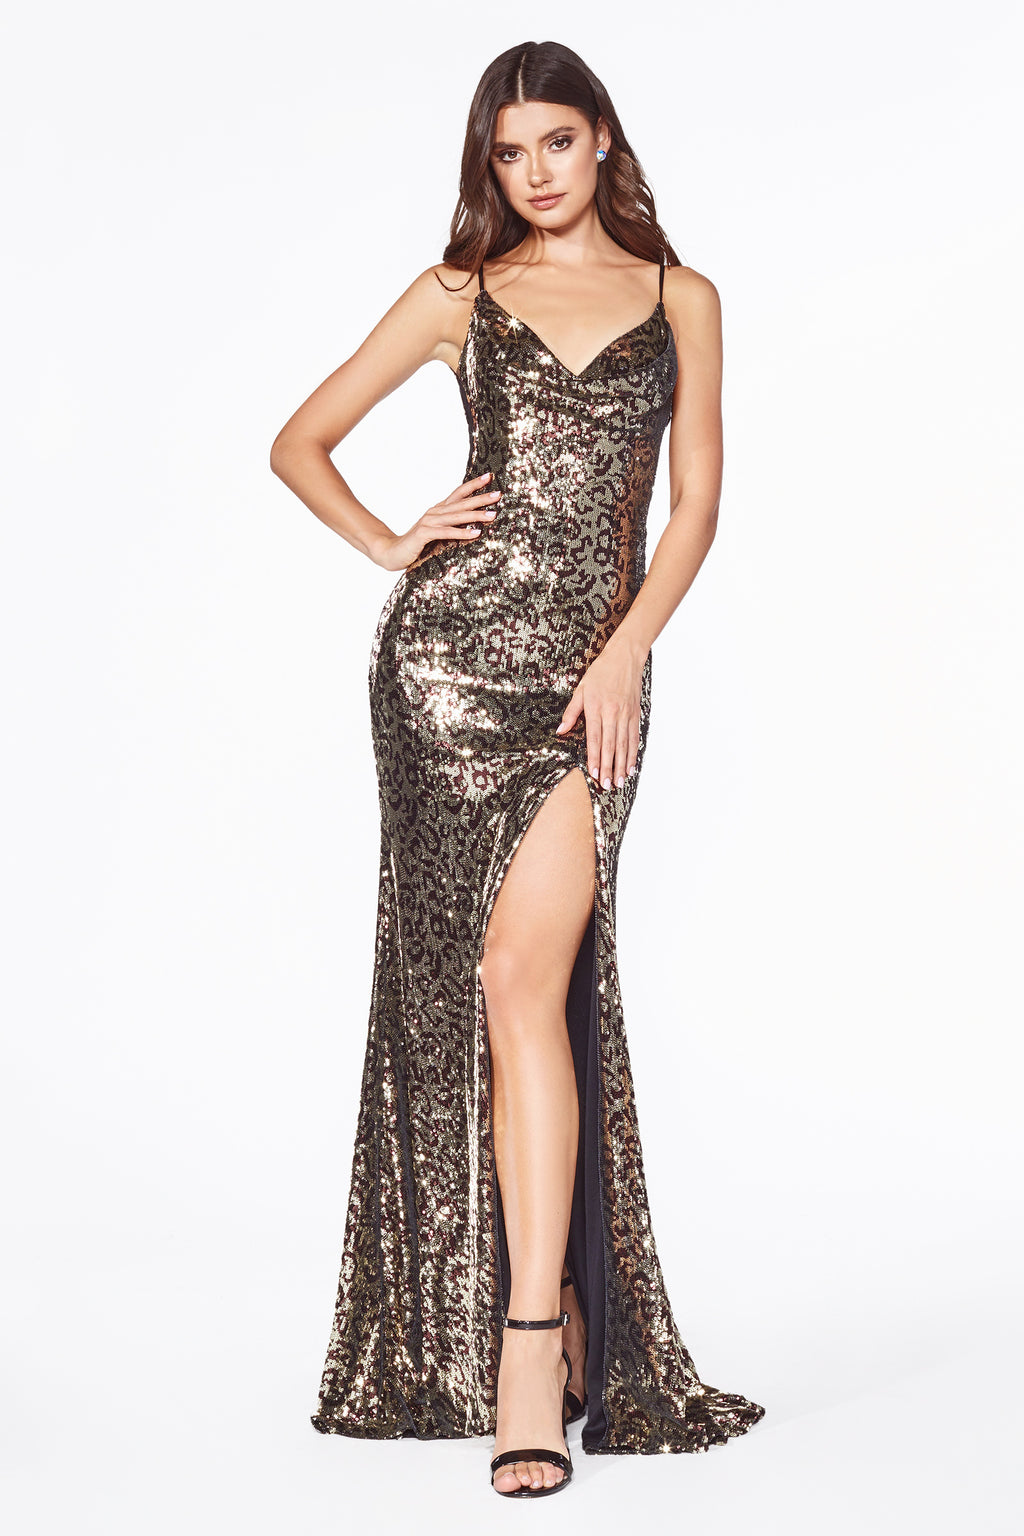 Leopard Sequin Dress With Sexy Leg Slit Style #LAC19 | Prom 2020